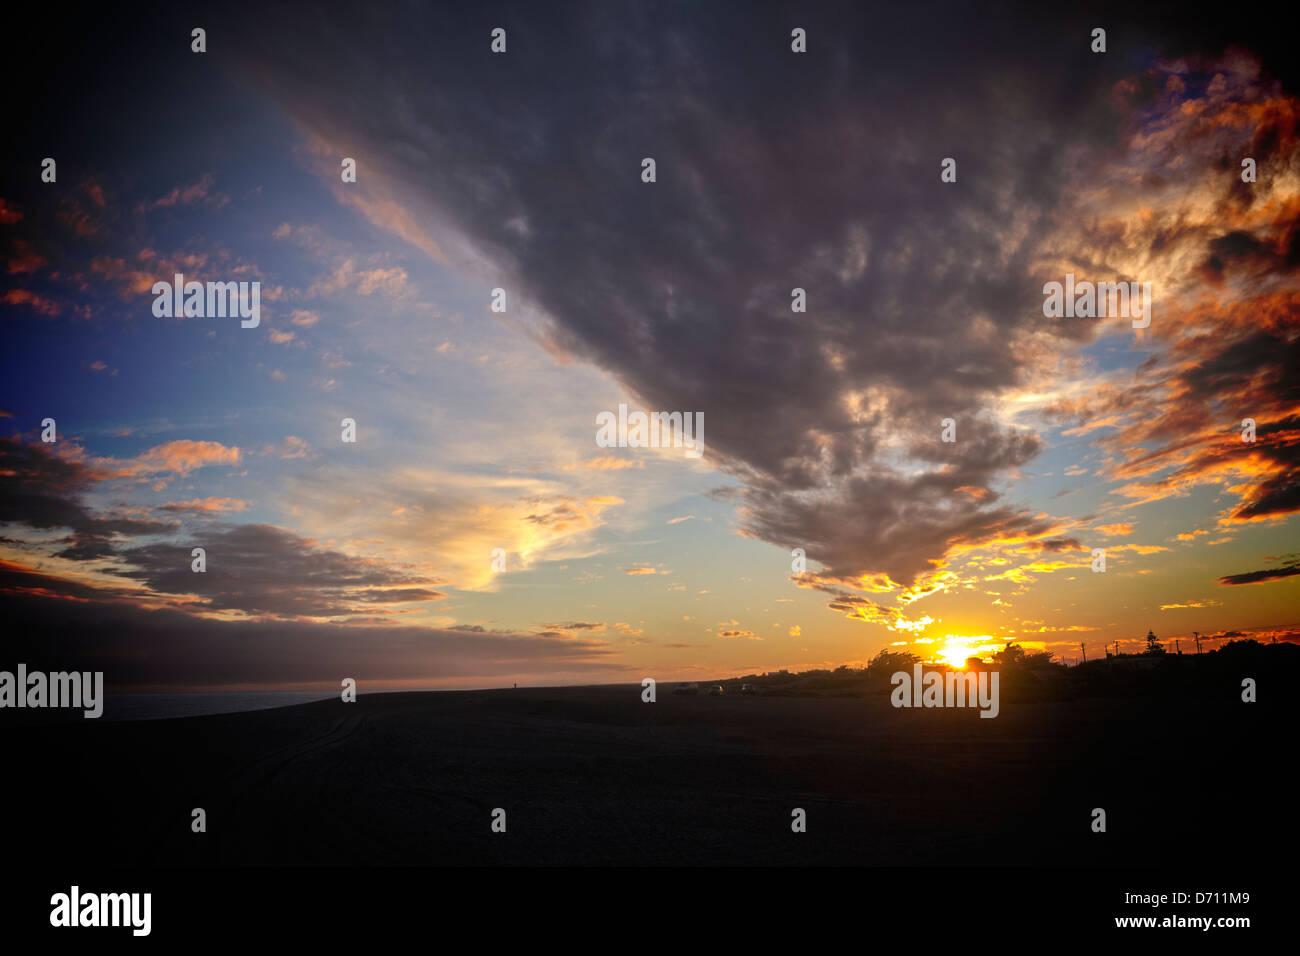 Sunset in Moody Sky - a dramatic sunset over a dark beach. - Stock Image